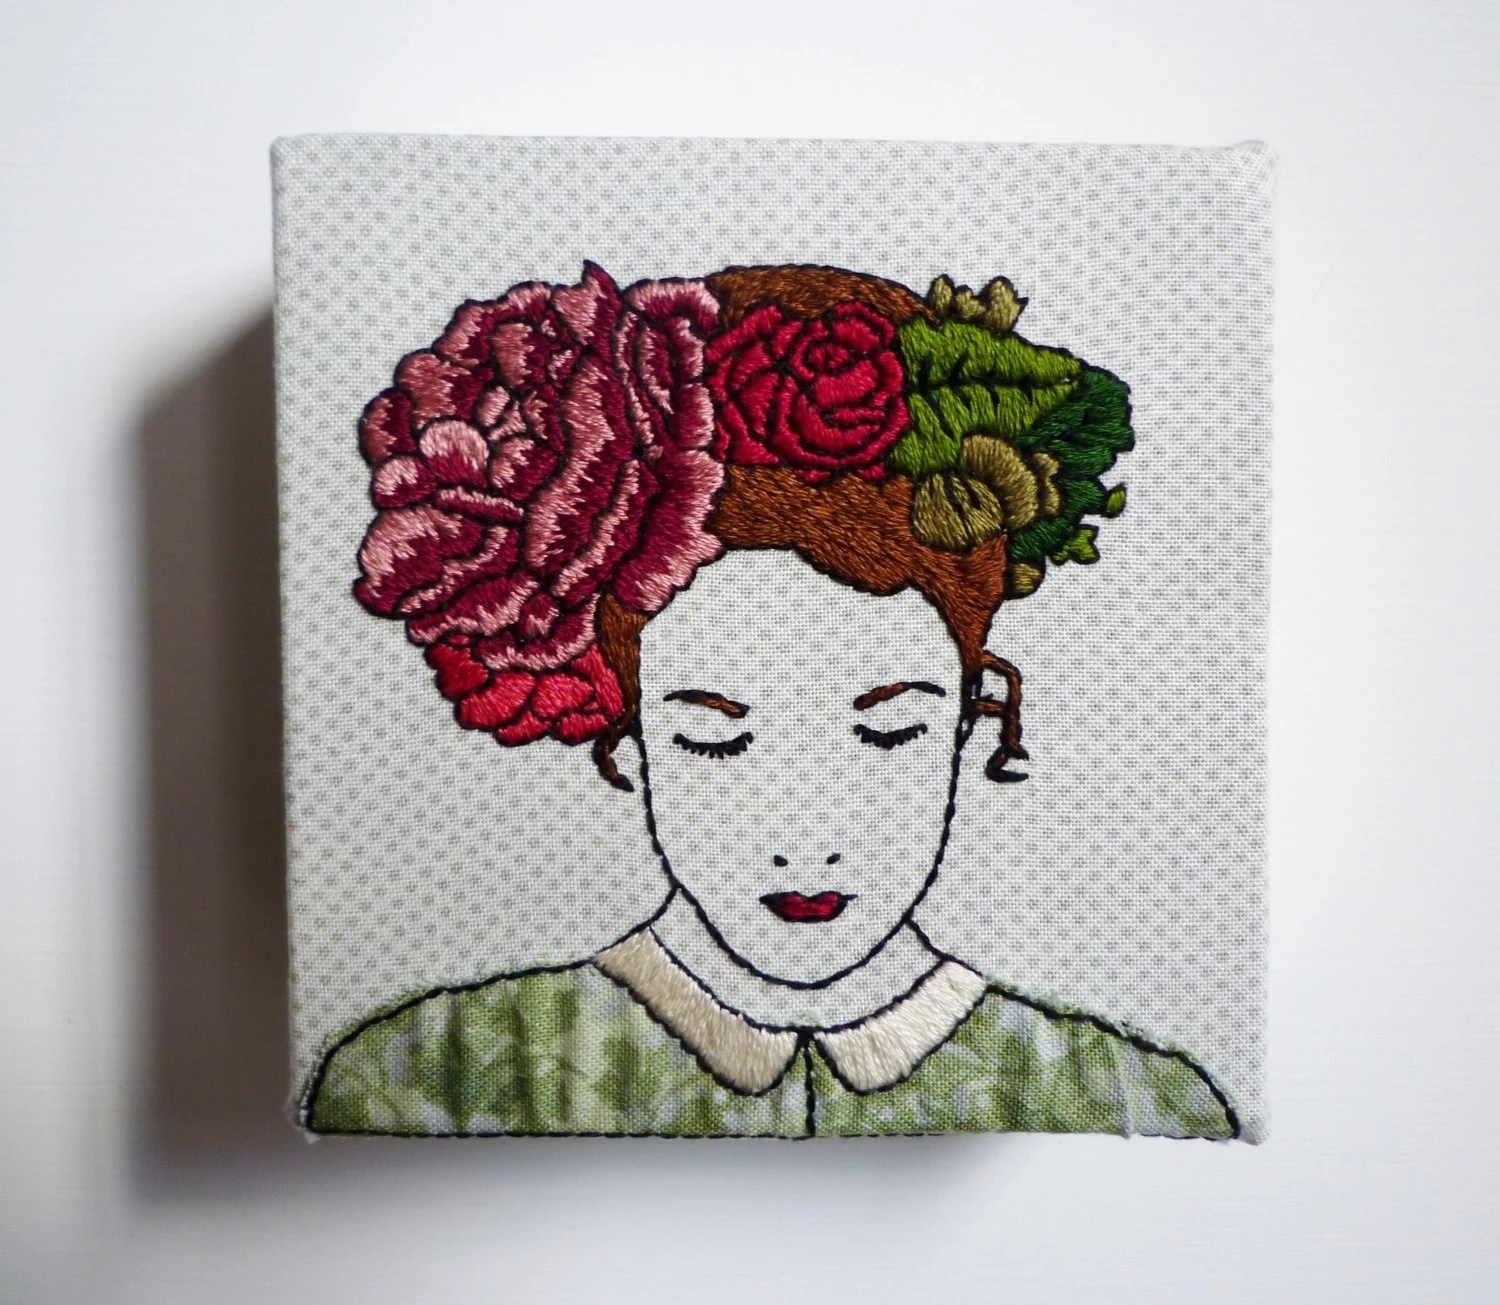 Modern Embroidery, 'Felicity' 4x4inch by Cheese Before Bedtime